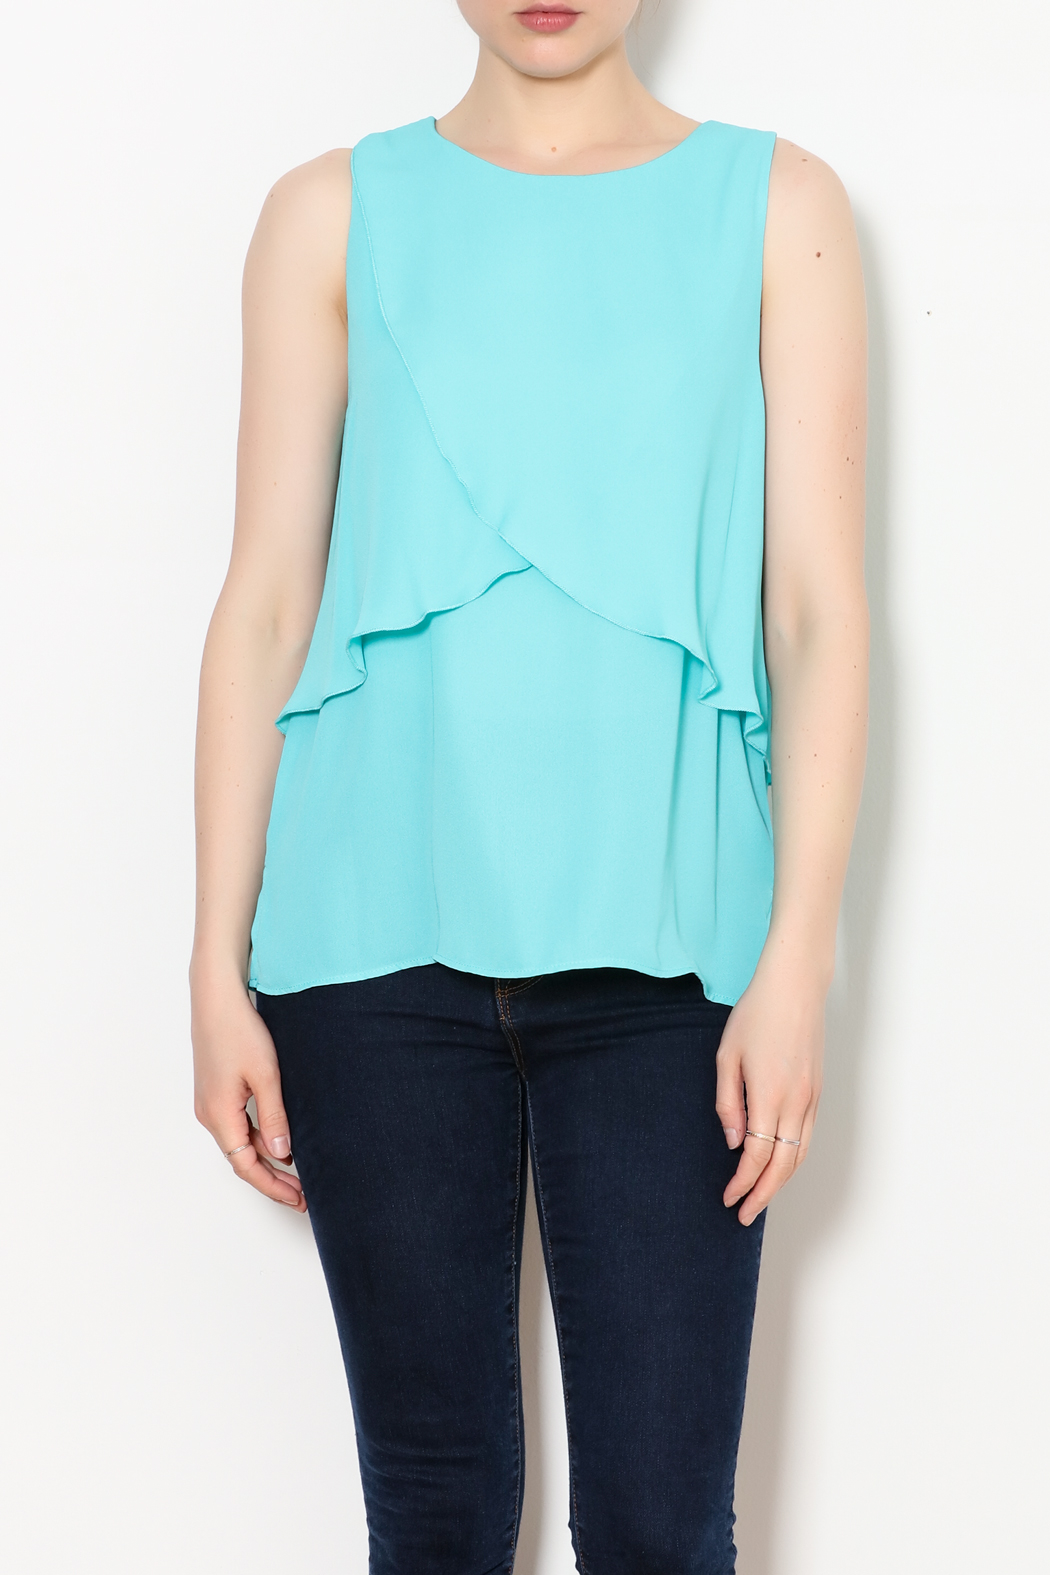 Kay Celine Charlotte Layered Top - Front Full Image